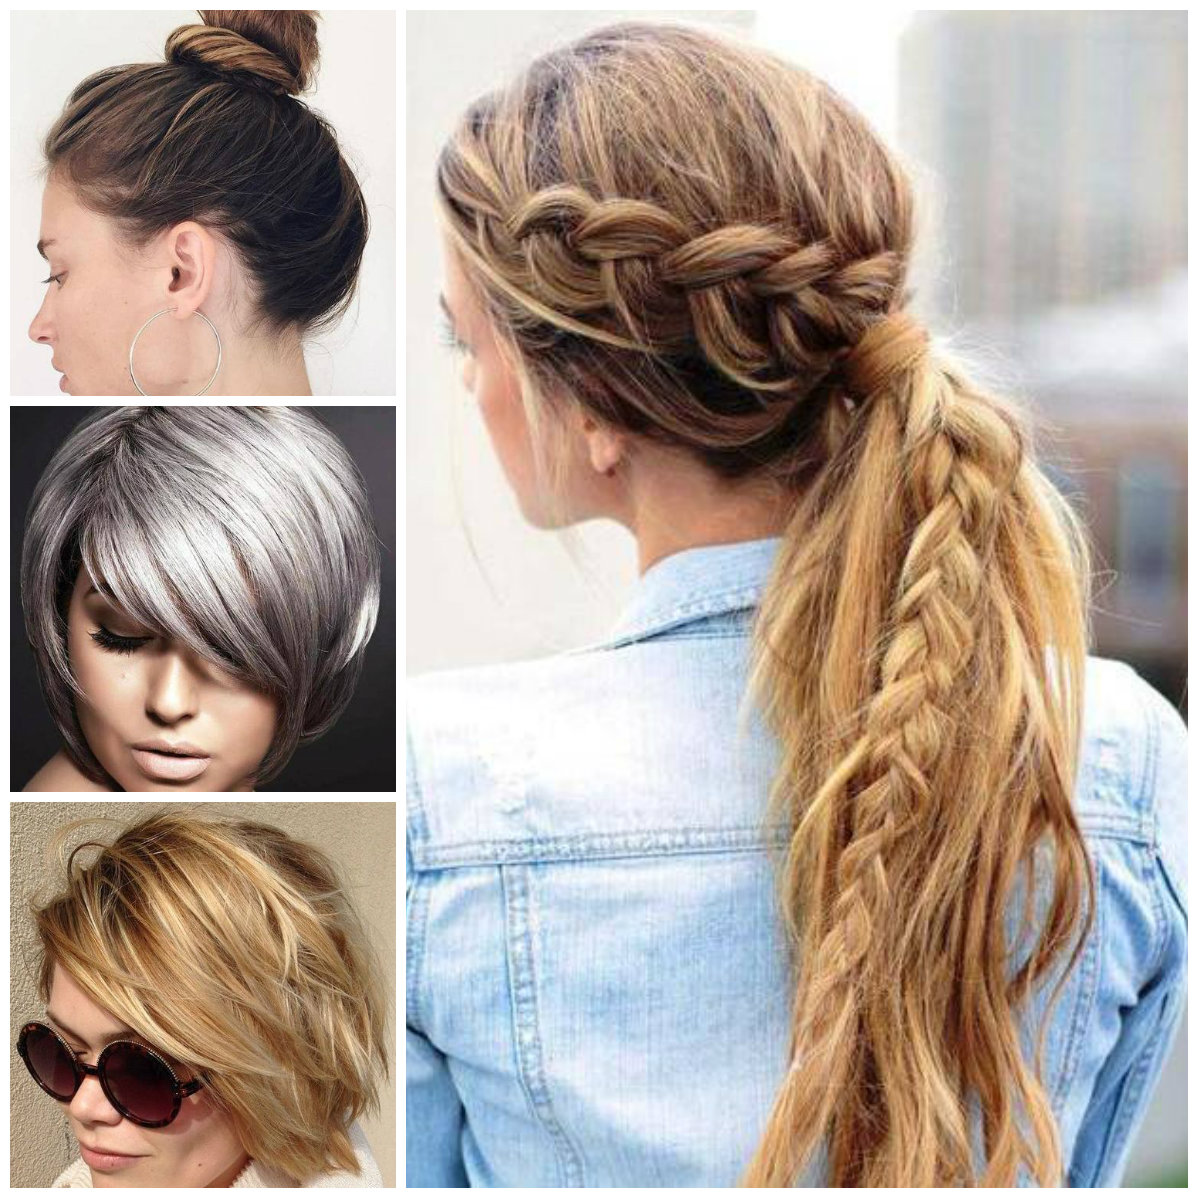 Chic Hairstyles for Straight Hair for 2017